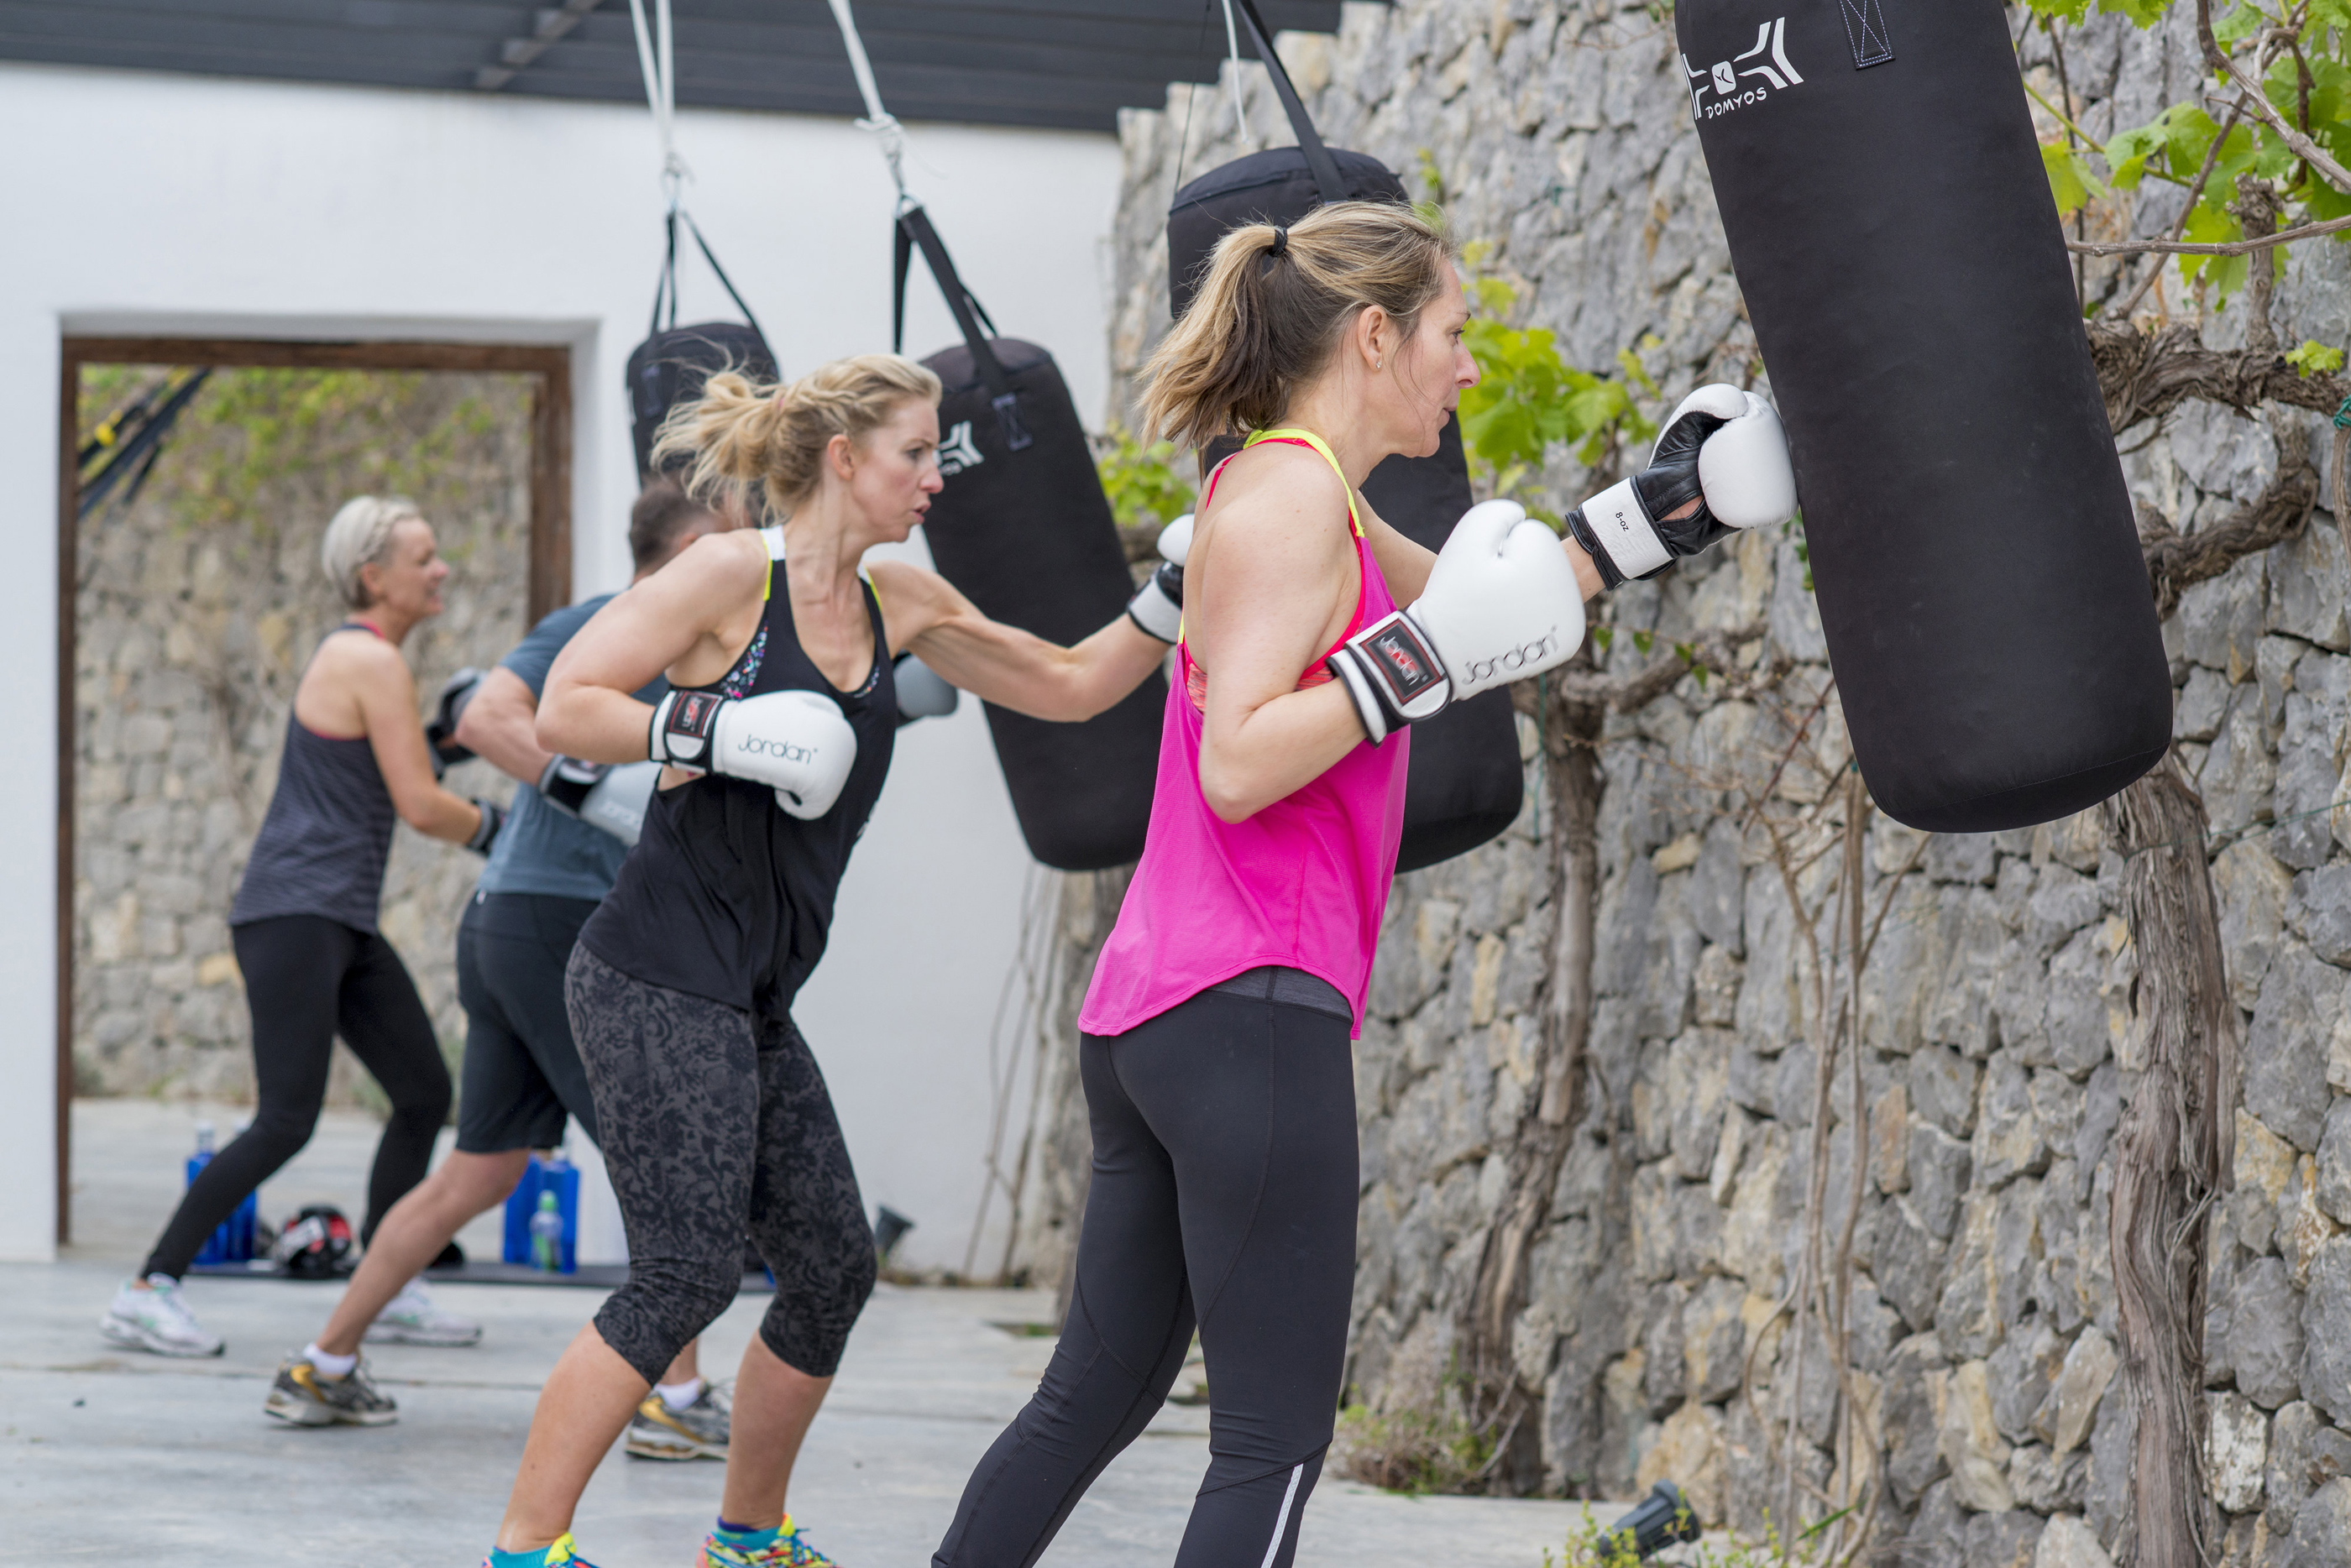 A work out session with punch bags (The Body Camp/PA)